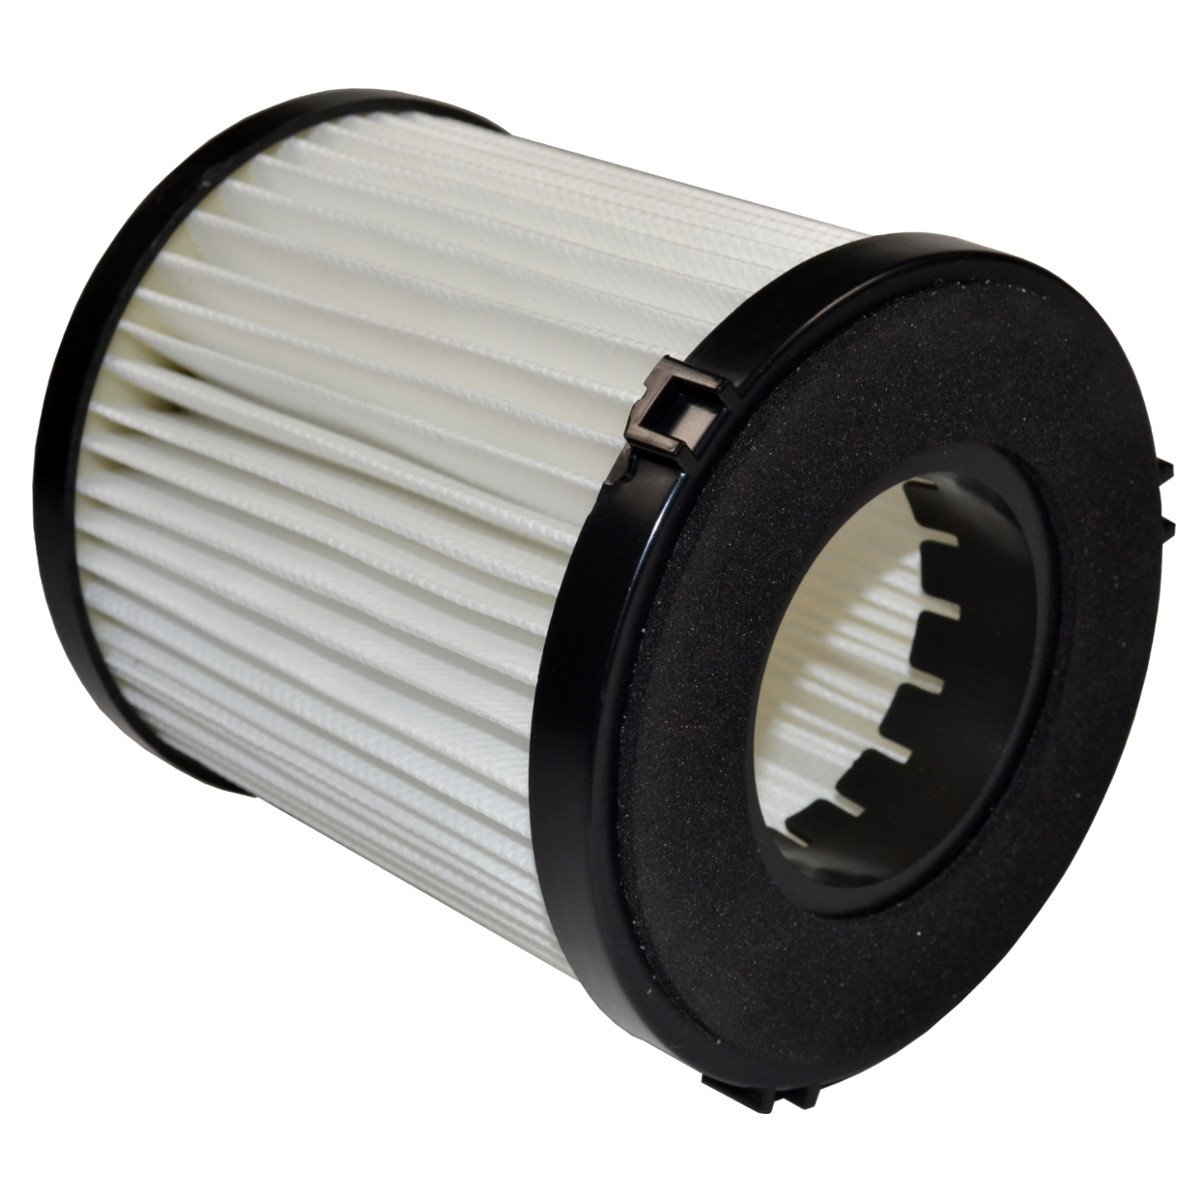 HQRP Dust Cup and Exhaust HEPA Filters for Eureka AirSpeed AS1001AE, AS1001AX, AS1000A, AS1001A Upright Vac Vacuum + HQRP Coaster - image 2 of 6